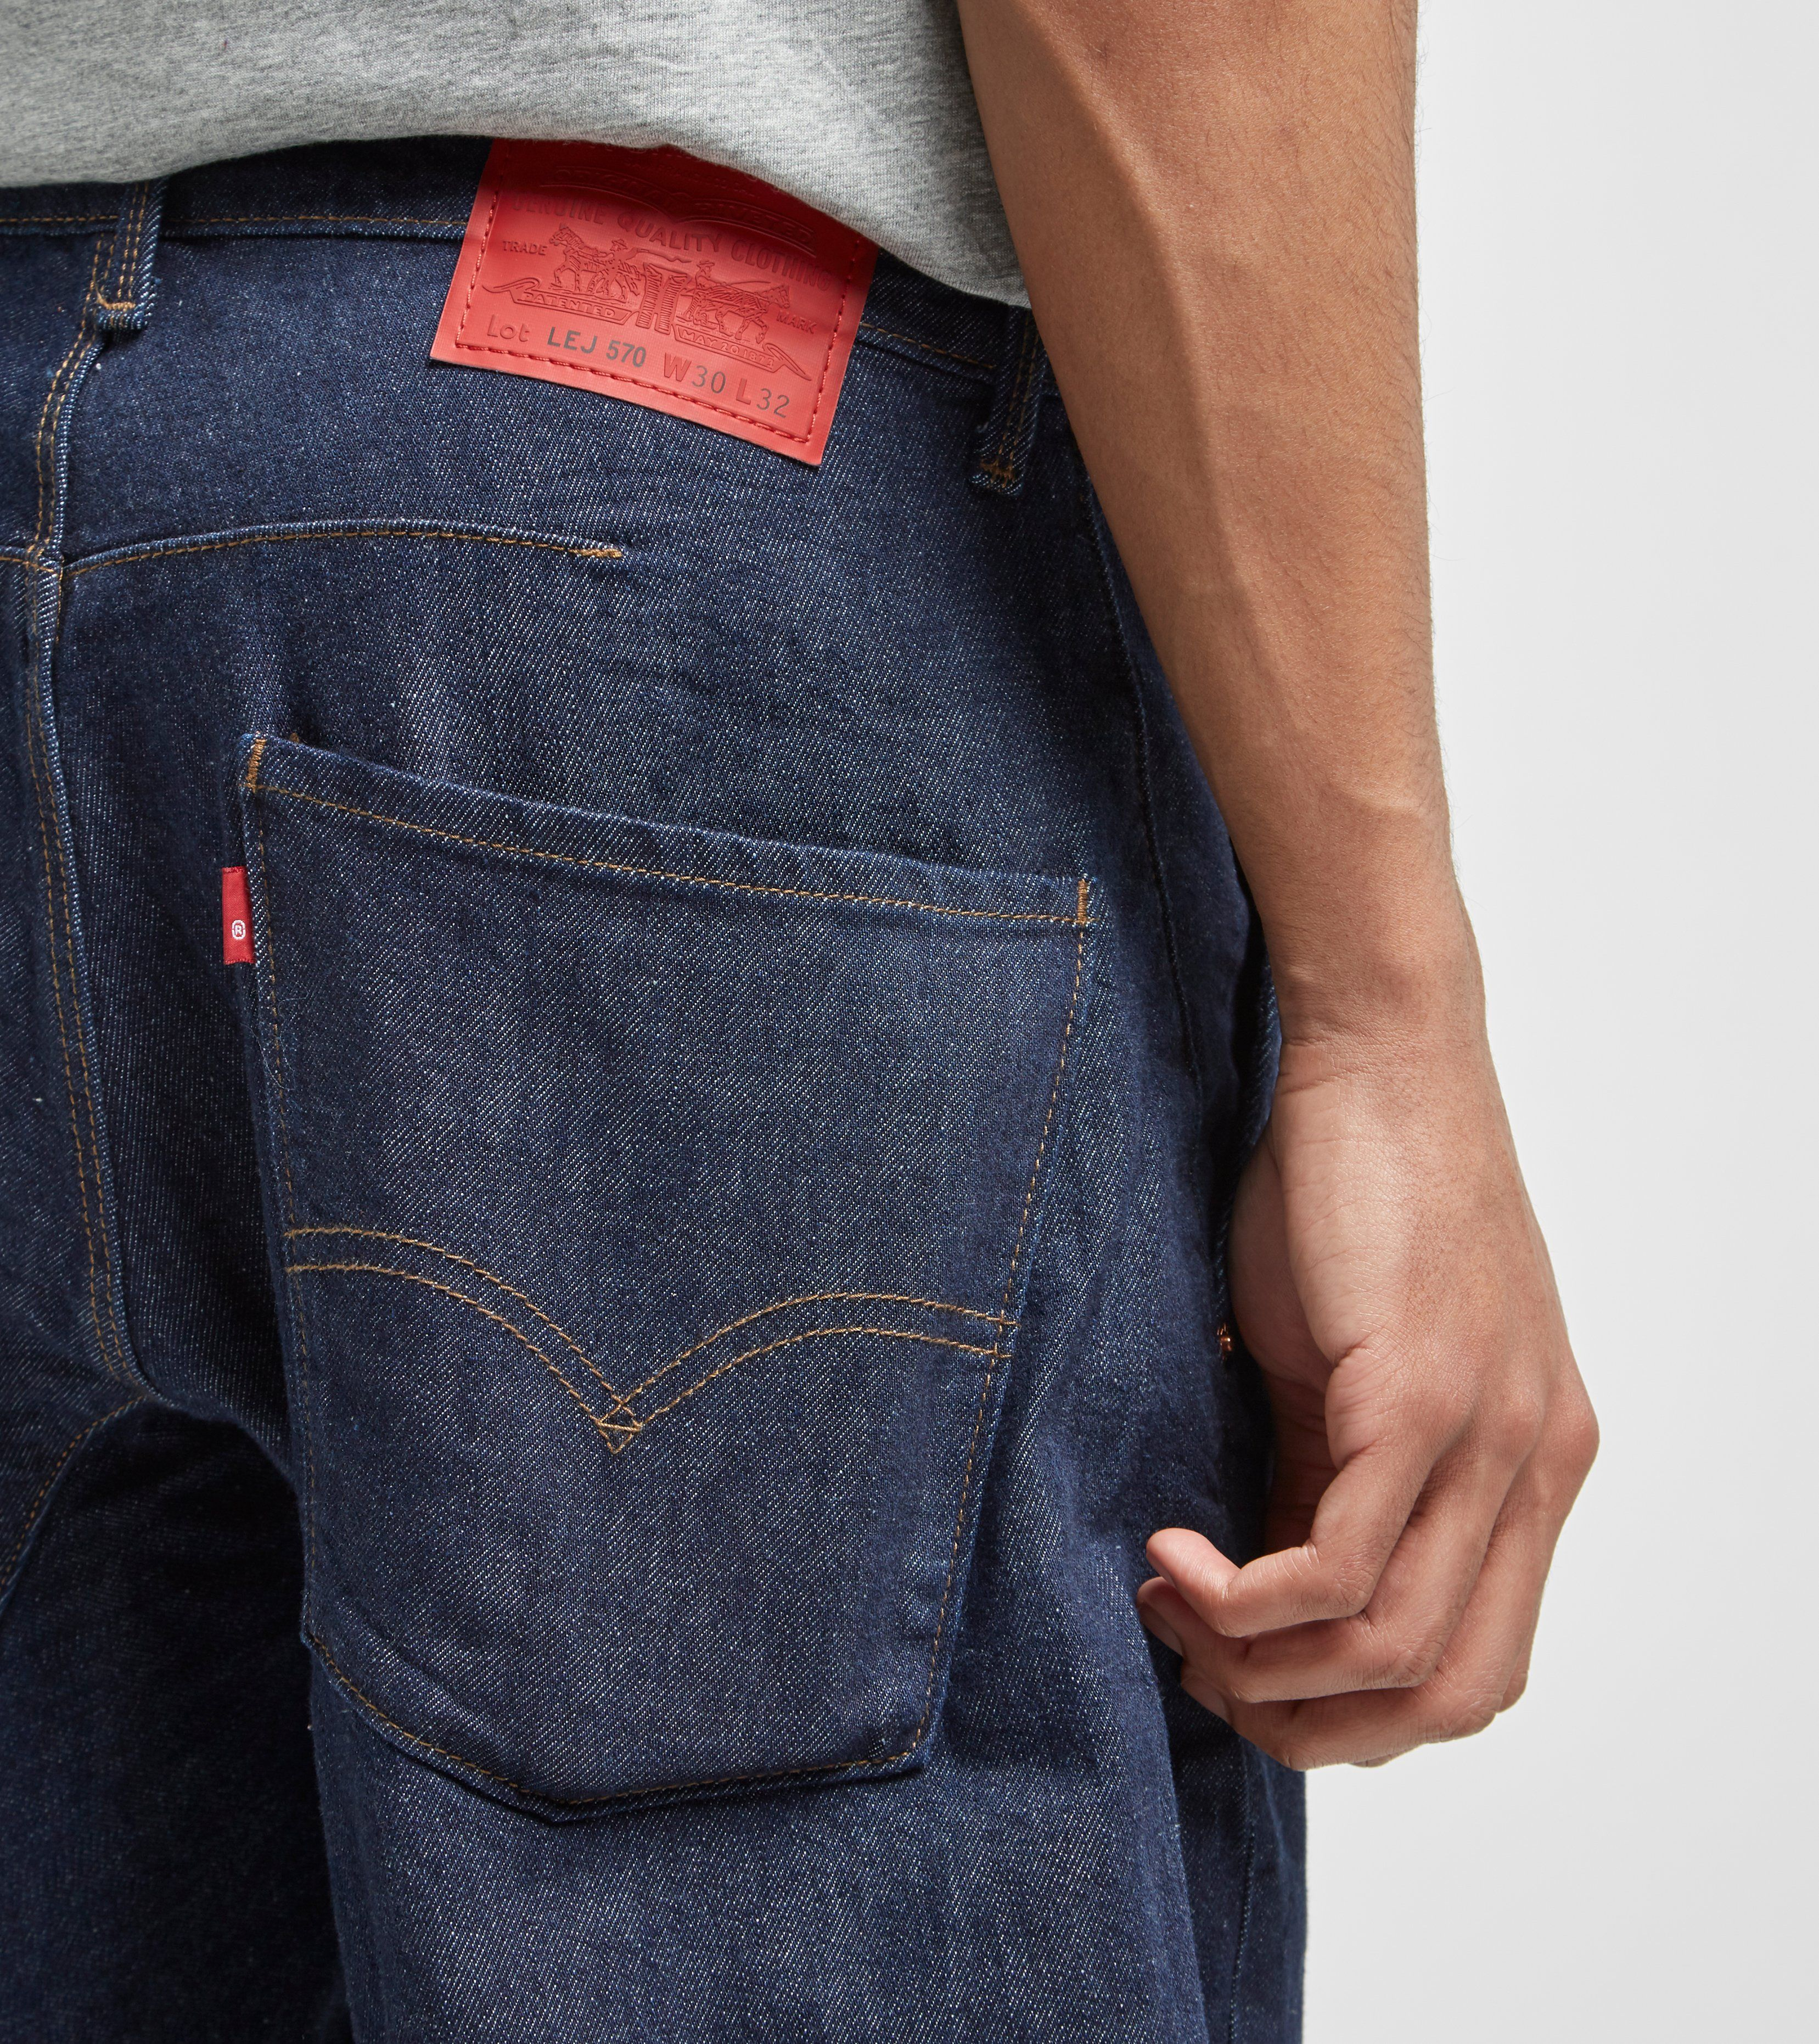 Levis Engineered Jeans 570